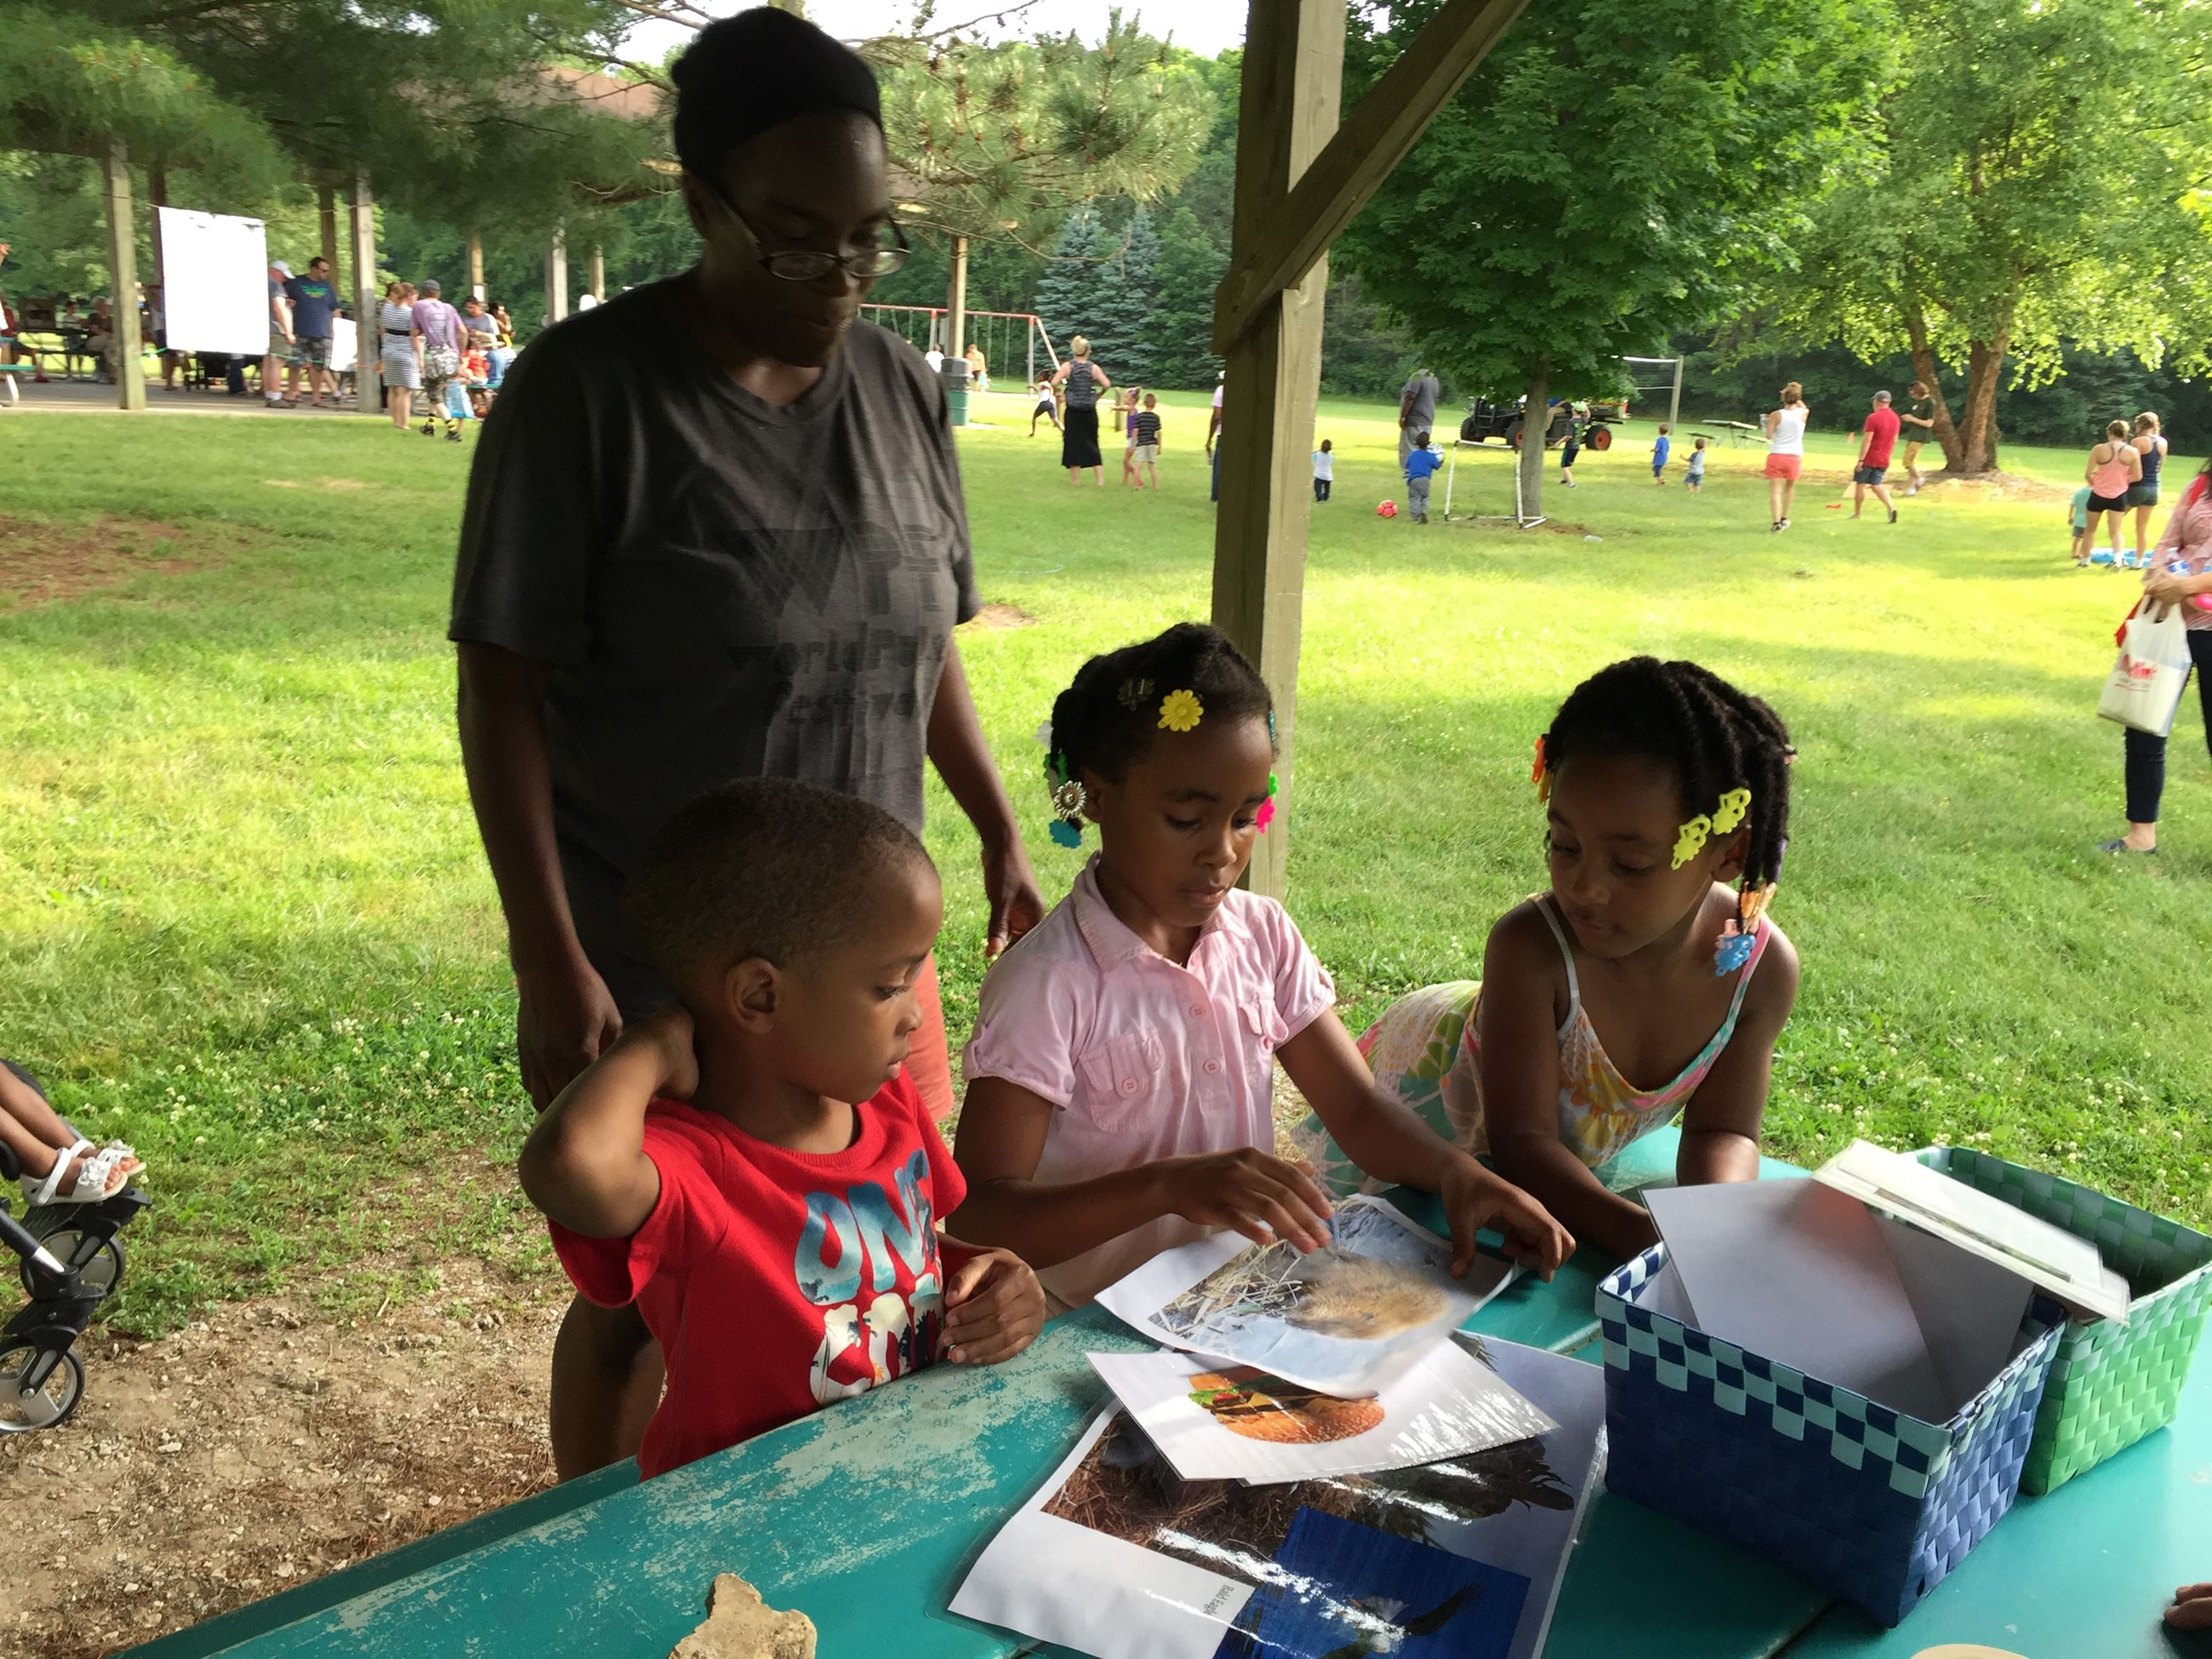 A family enjoys a nature activity with park naturalist